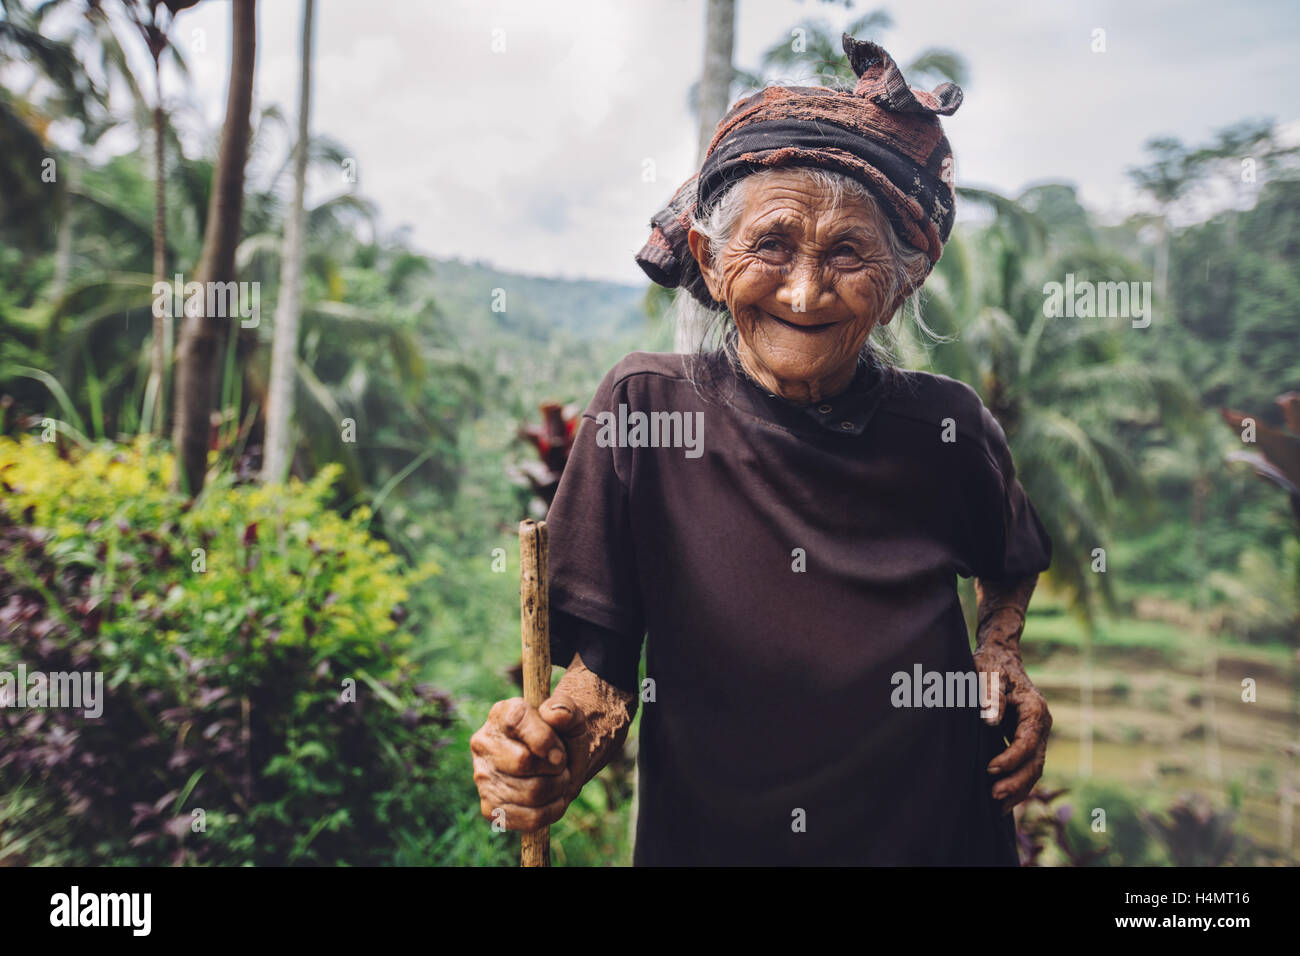 Portrait of senior woman standing with a cane and smiling. Old female with beautiful smile on her face outdoors - Stock Image